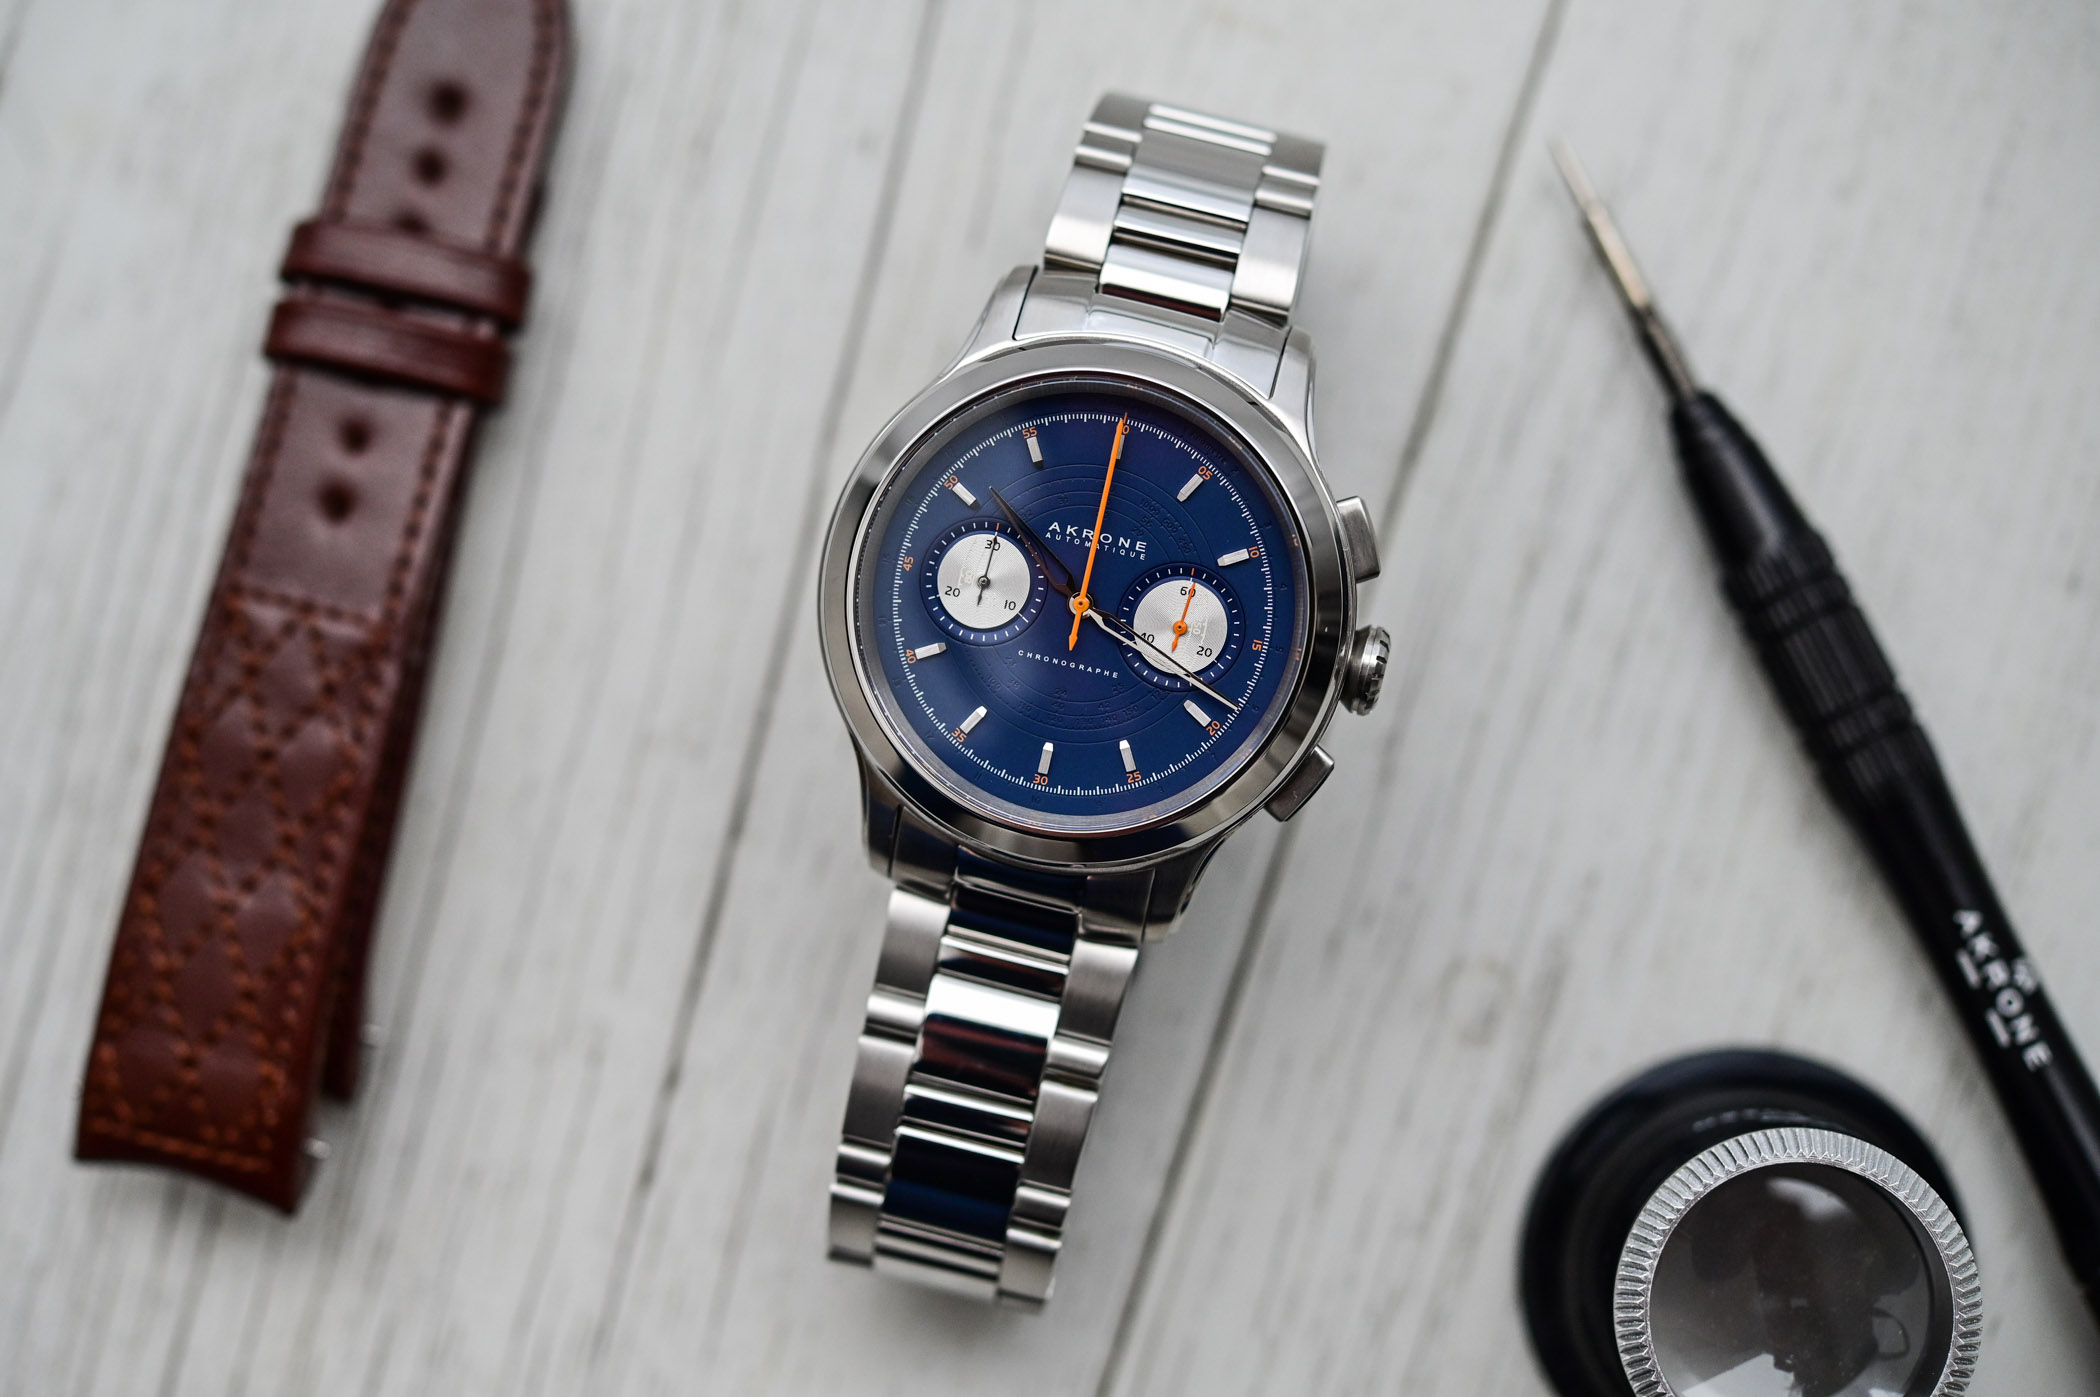 Akrone K-05 Automatic Chronograph